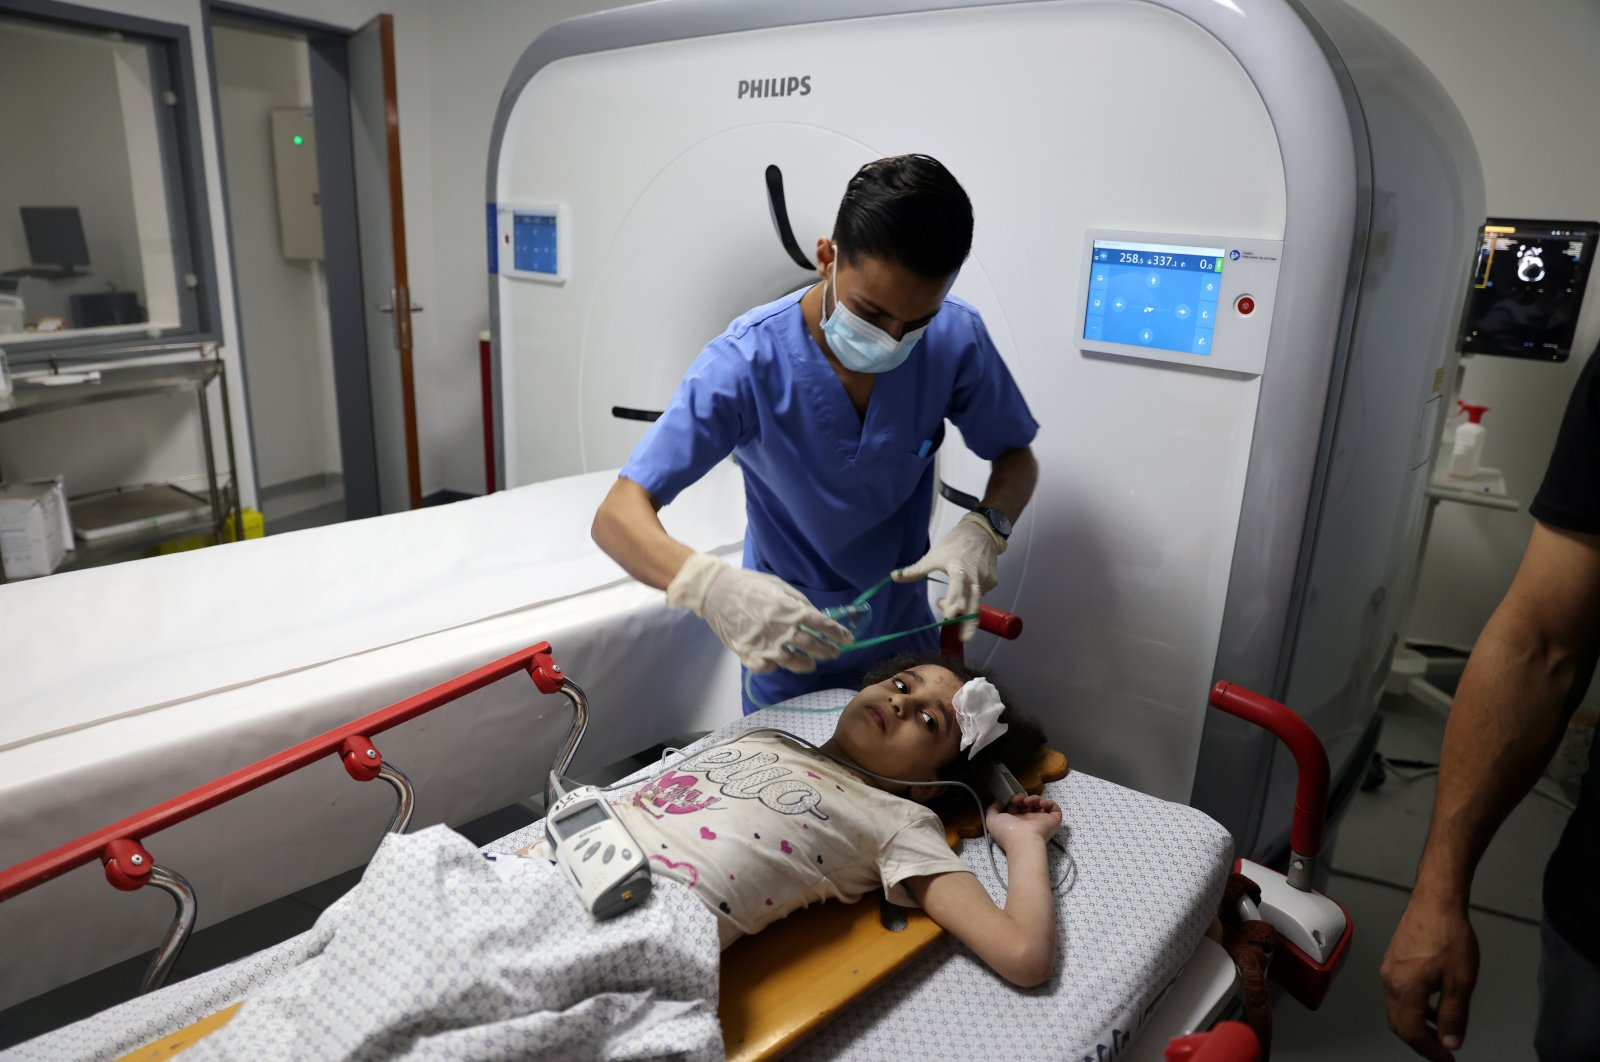 A Palestinian girl is treated by a medic at a hospital after being pulled from the rubble of a building amidst Israeli airstrikes, in Gaza City, Palestine, May 16, 2021. (Reuters Photo)